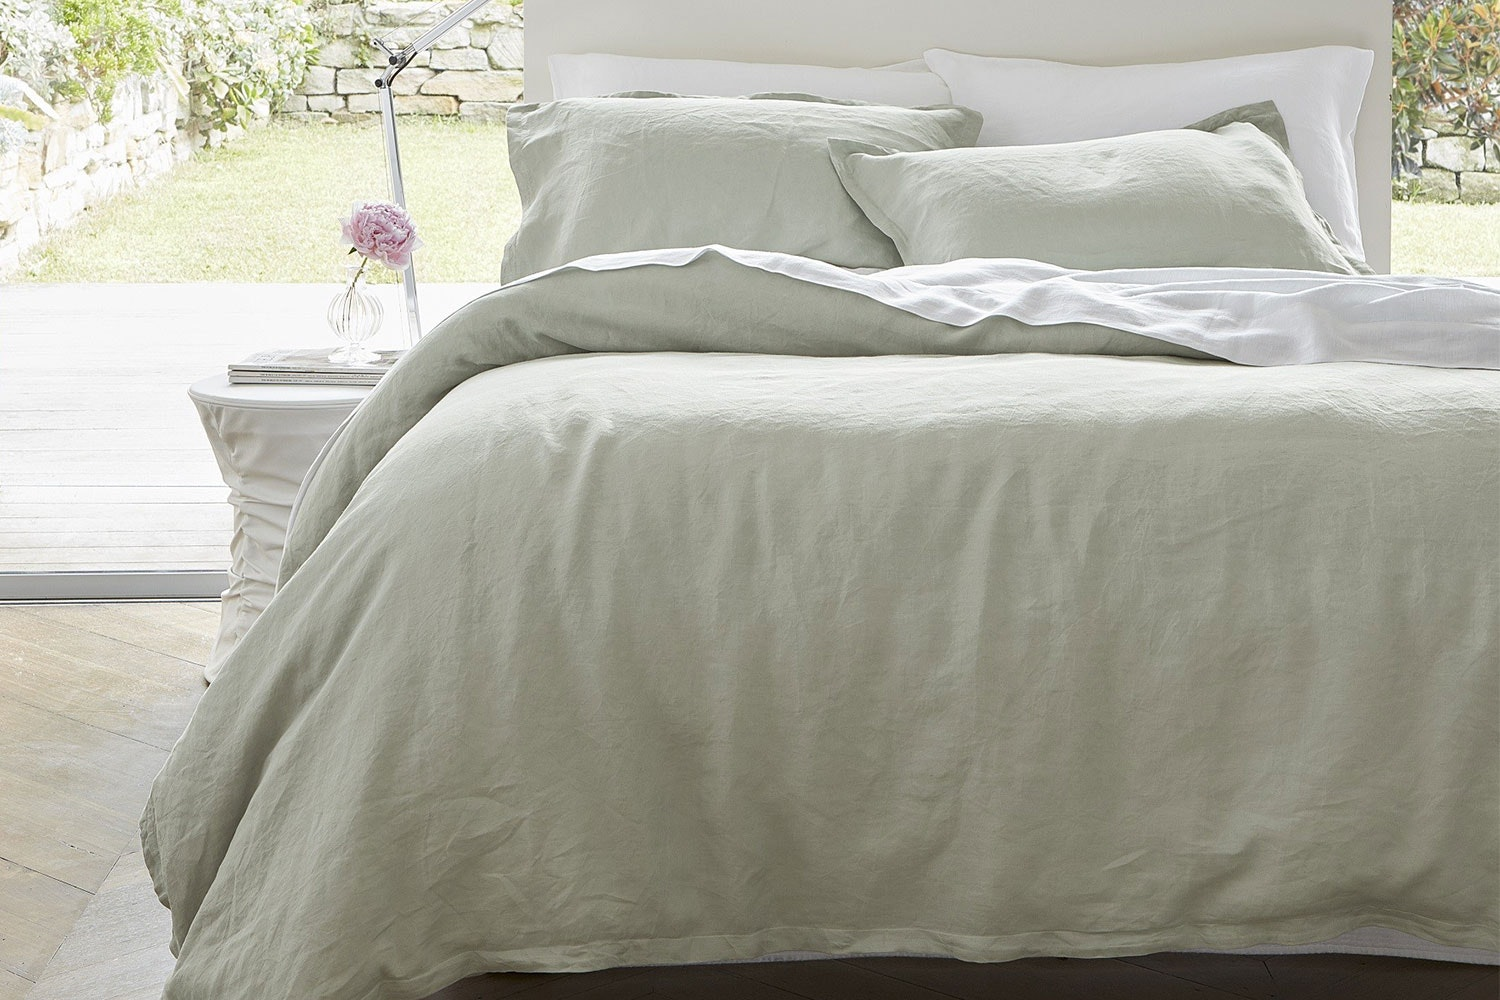 Linen Smoke Duvet Cover Set by Baksana